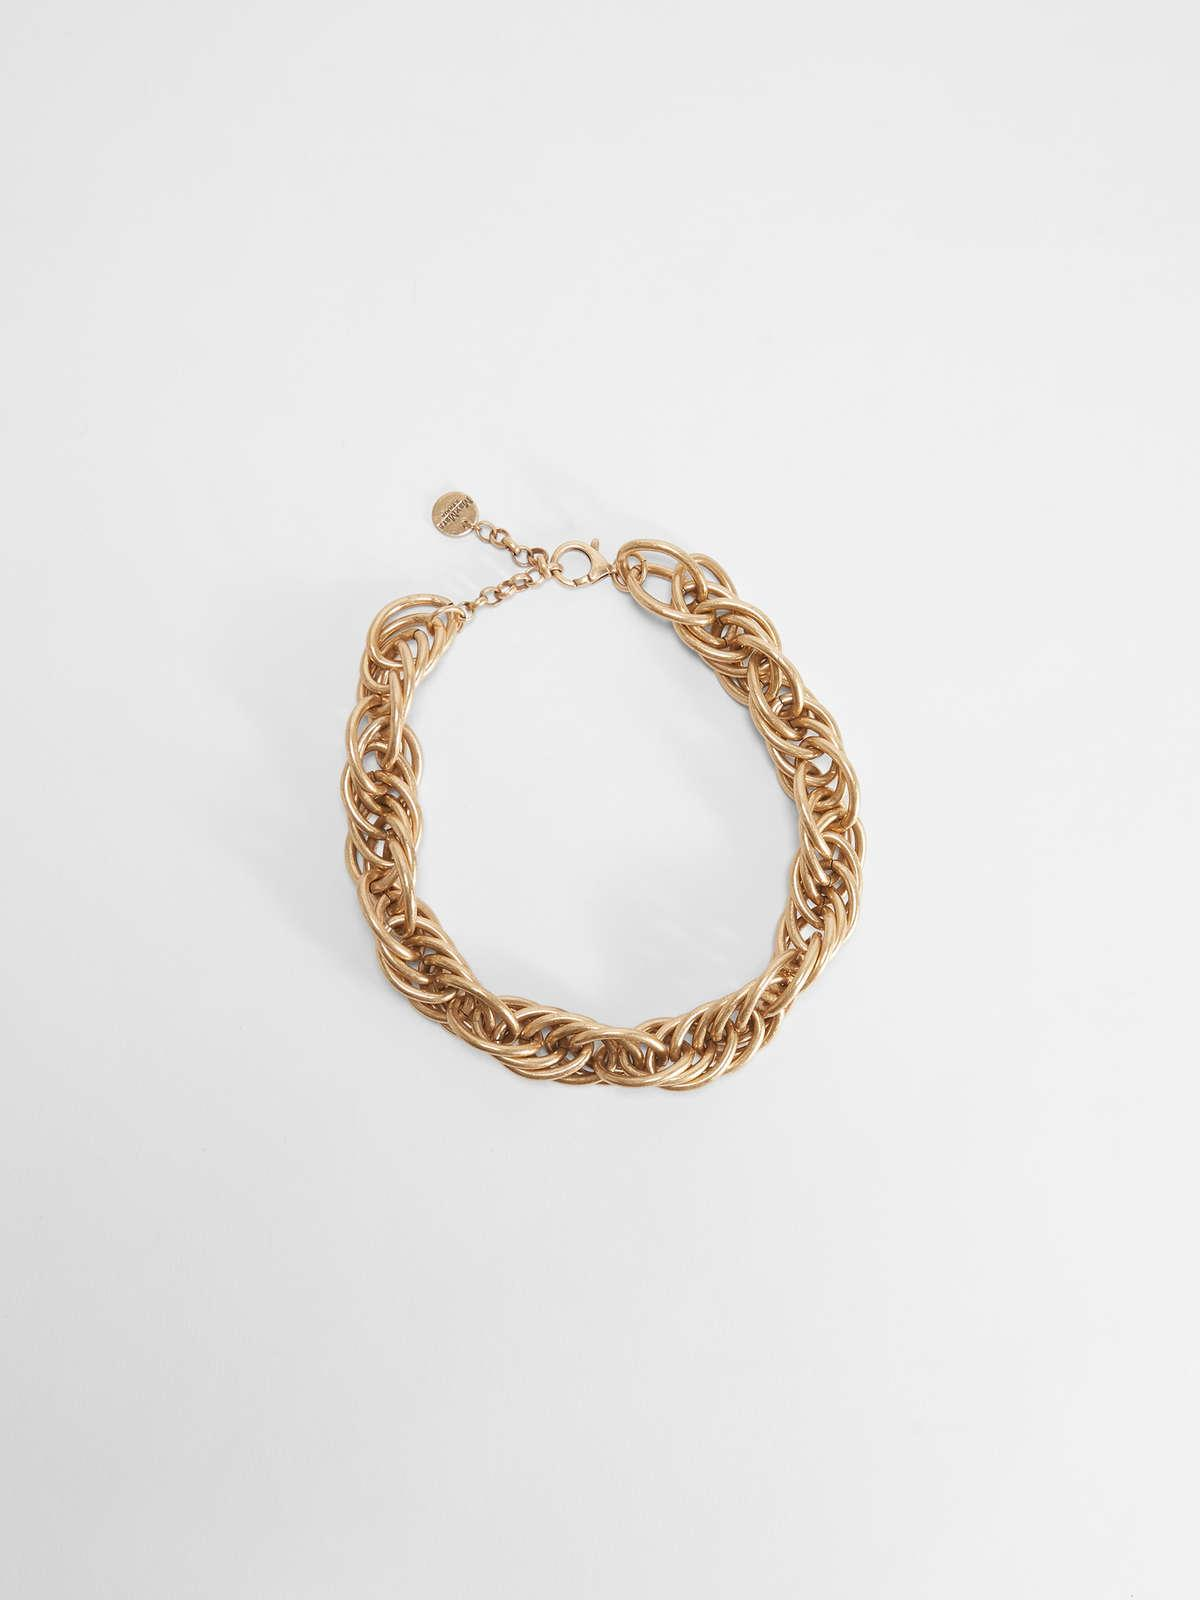 Womens Max Mara Jewelry   Metal Necklace Gold